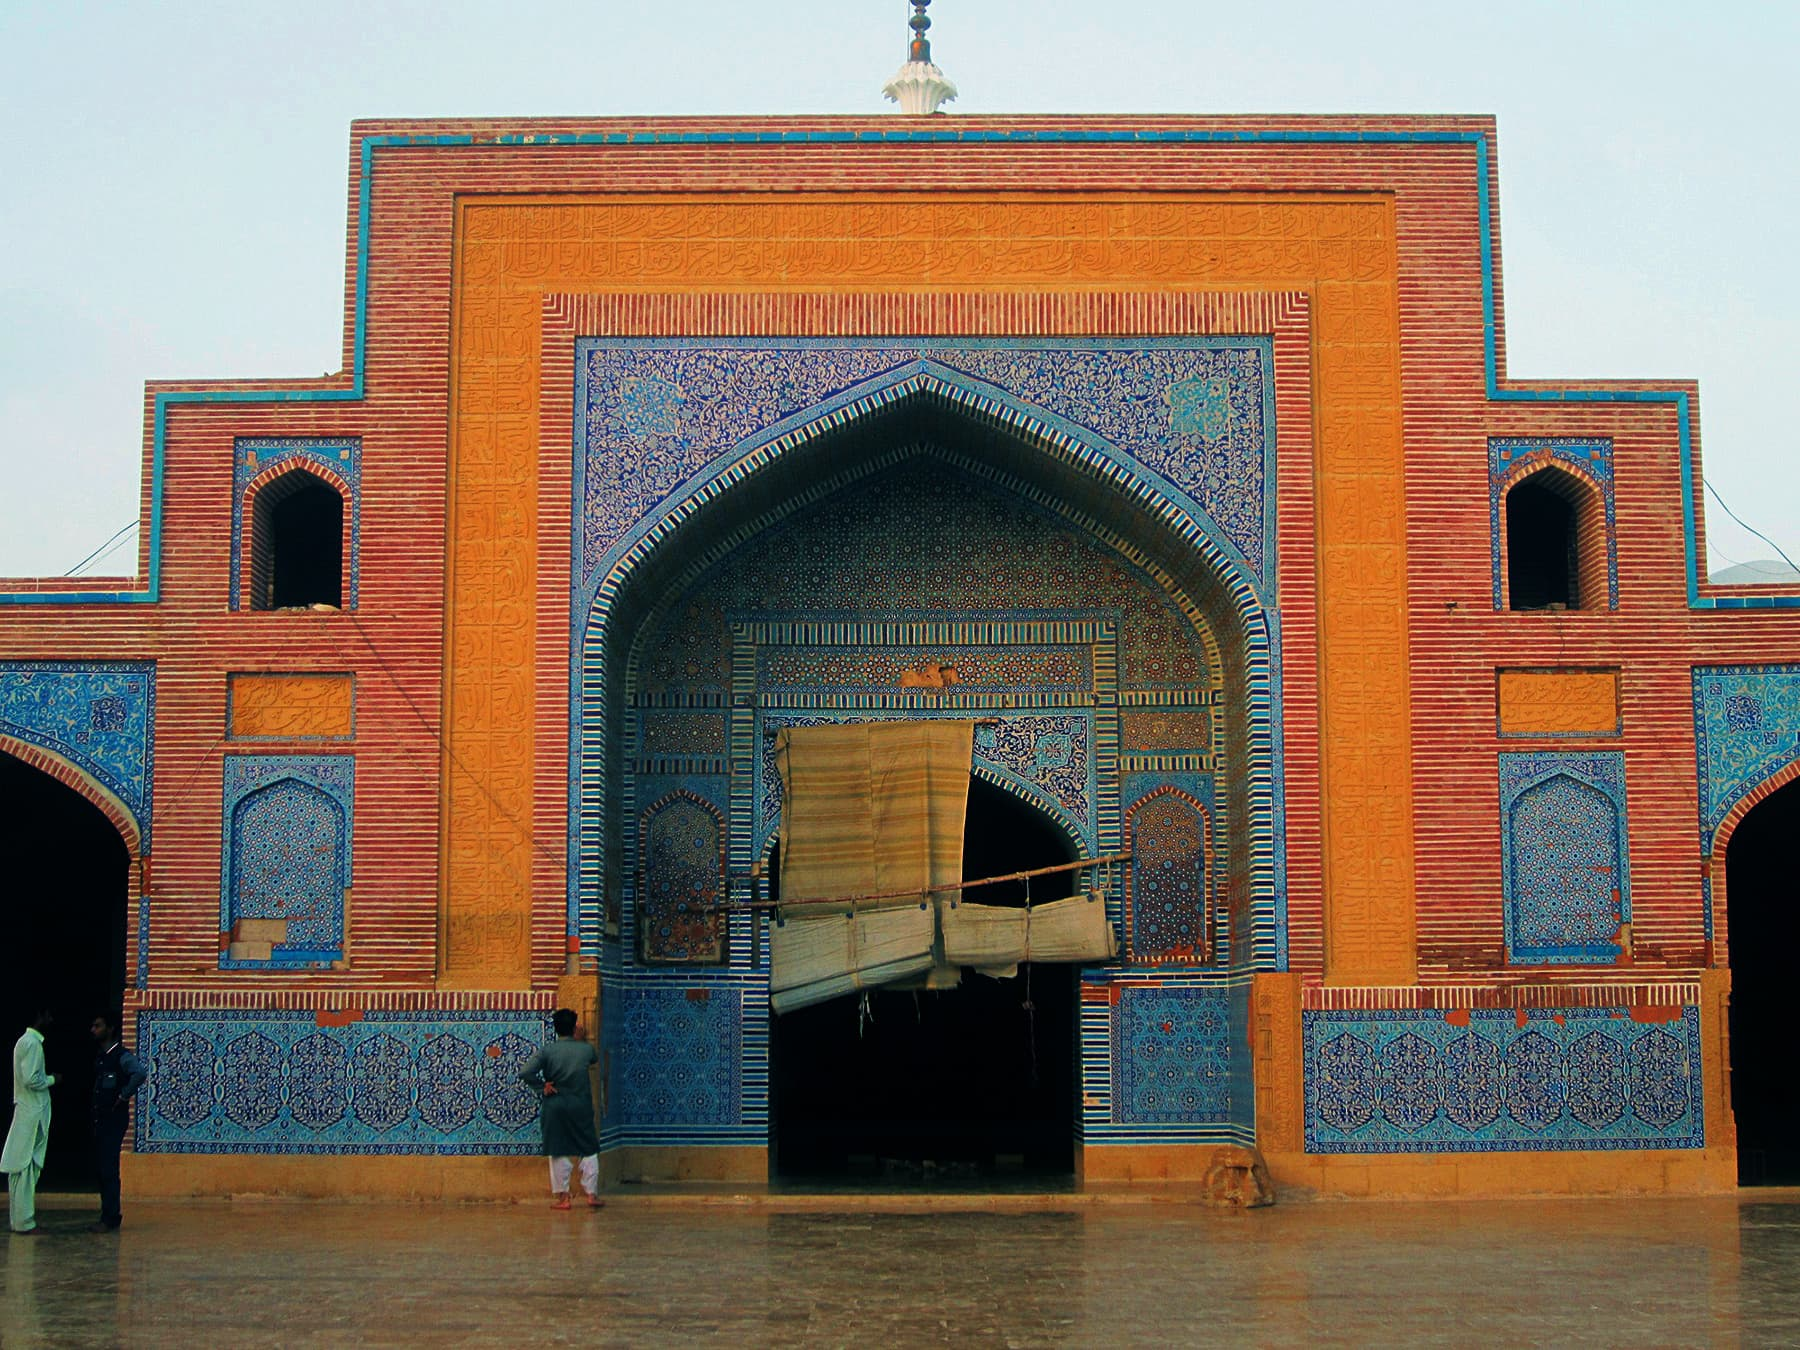 The mosque's main entrance.